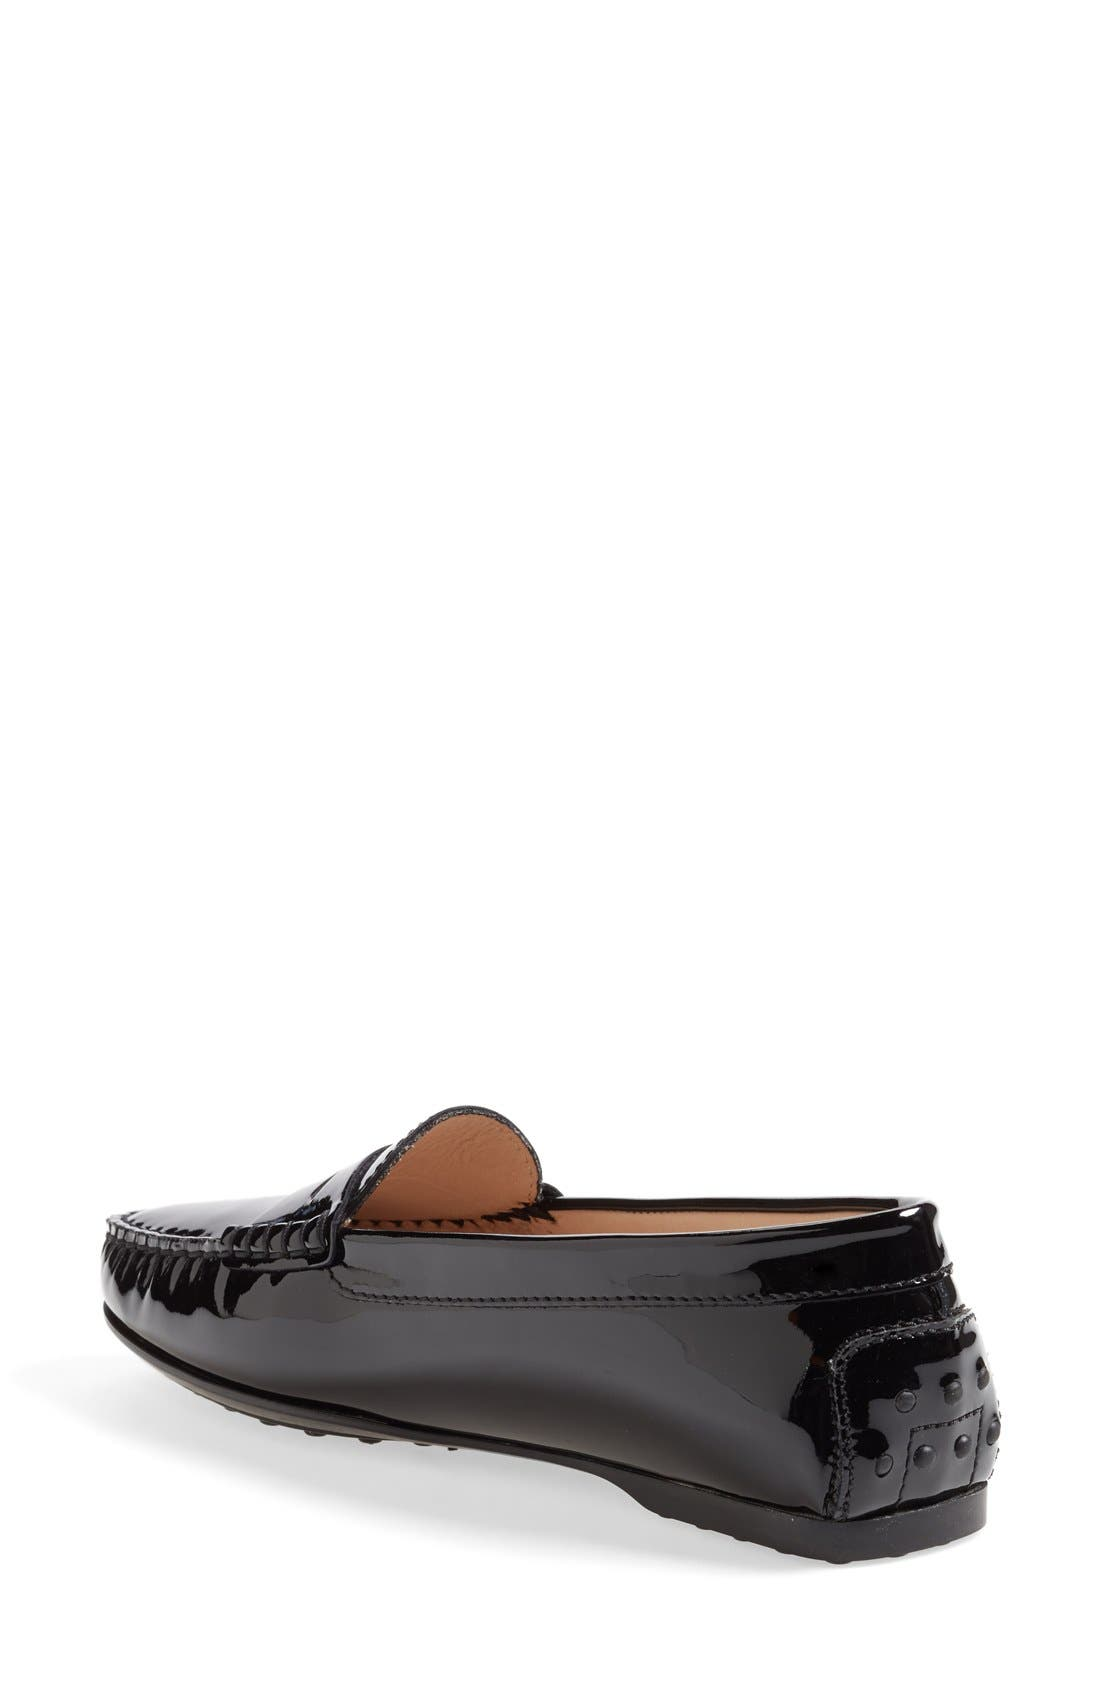 Alternate Image 2  - Tod's Patent Leather Penny Loafer (Women)